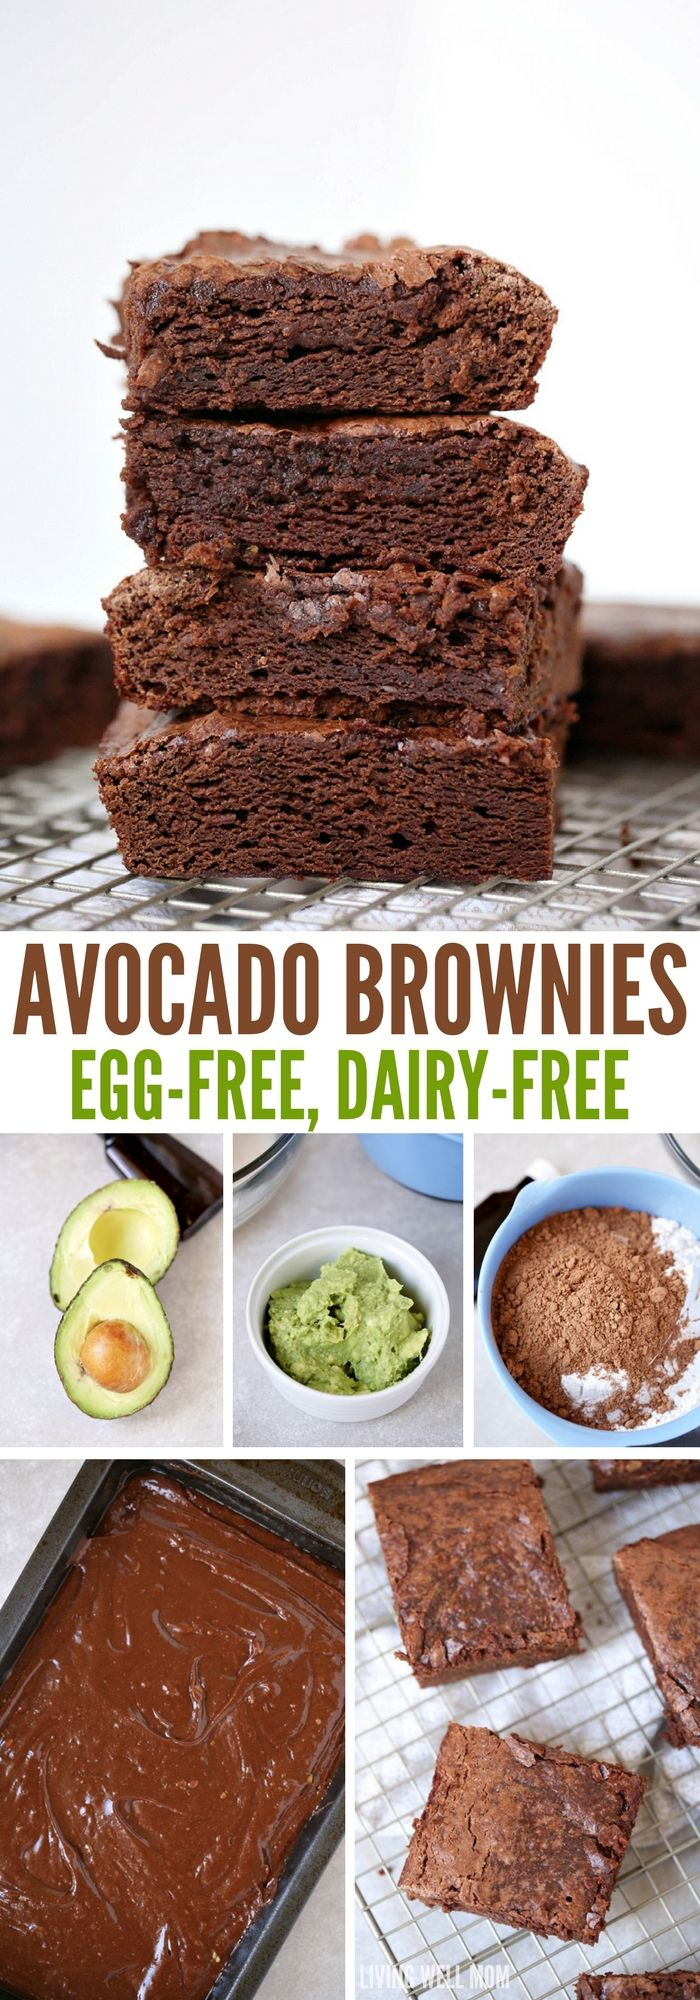 Guilt Free Avocado Brownies Recipe All Vegan Avocado